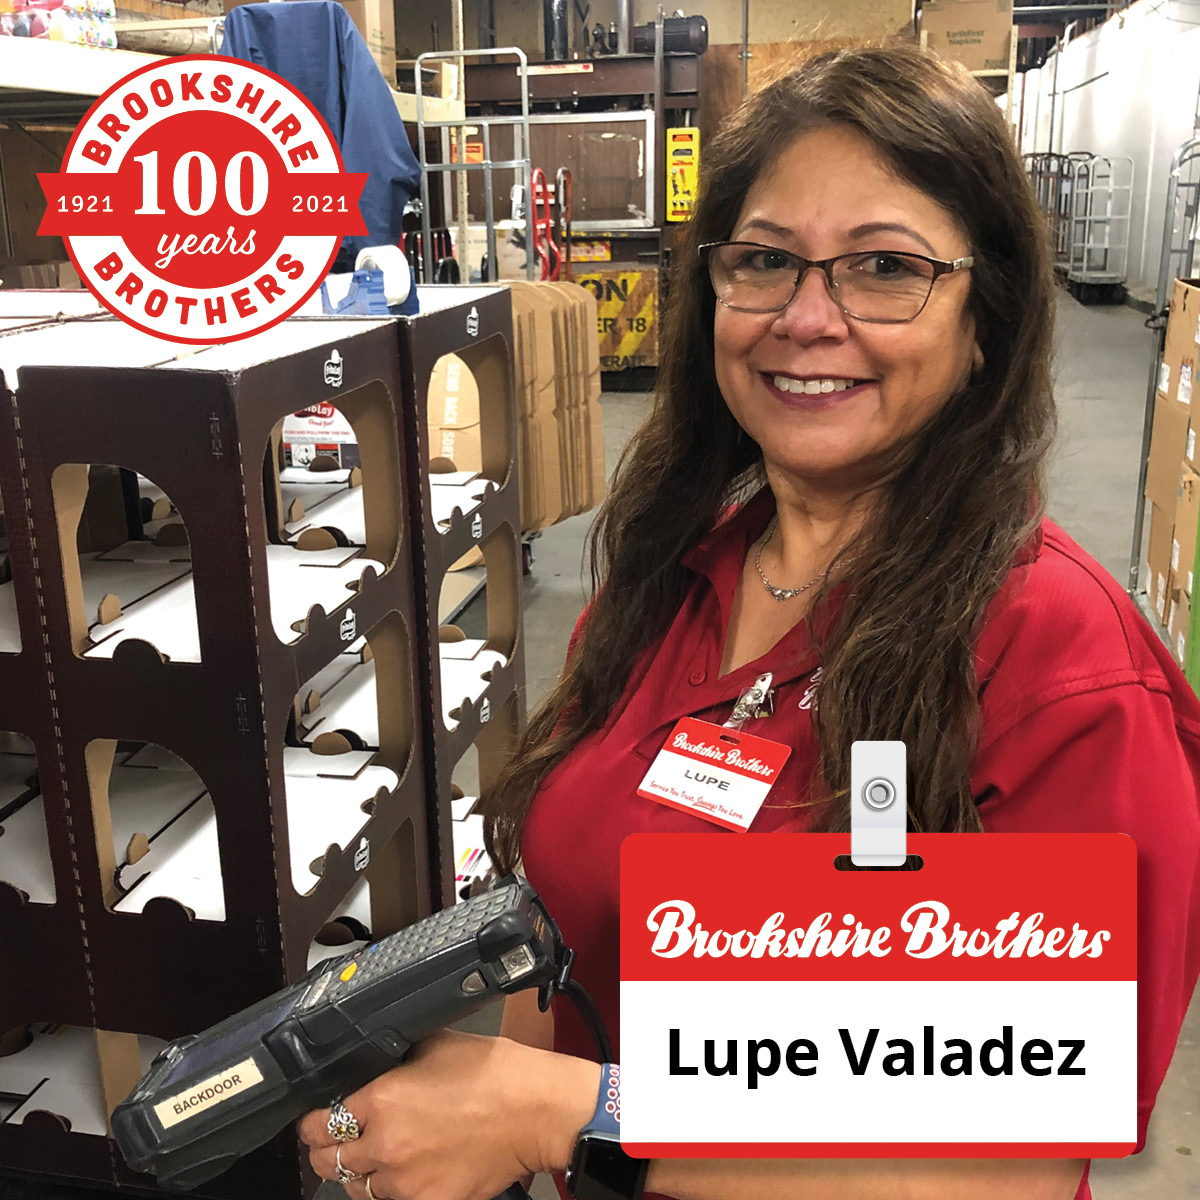 As a DSD clerk, Lupe Valdez does so many additional things to assist her co-workers, says Store Director Matt Milliff from... Read more: bit.ly/3sx4kt9 #Congratulations #ShoutoutSunday #EmployeeRecognition #BBPartner #EmployeeOwned #YourCommunityGrocerSince1921